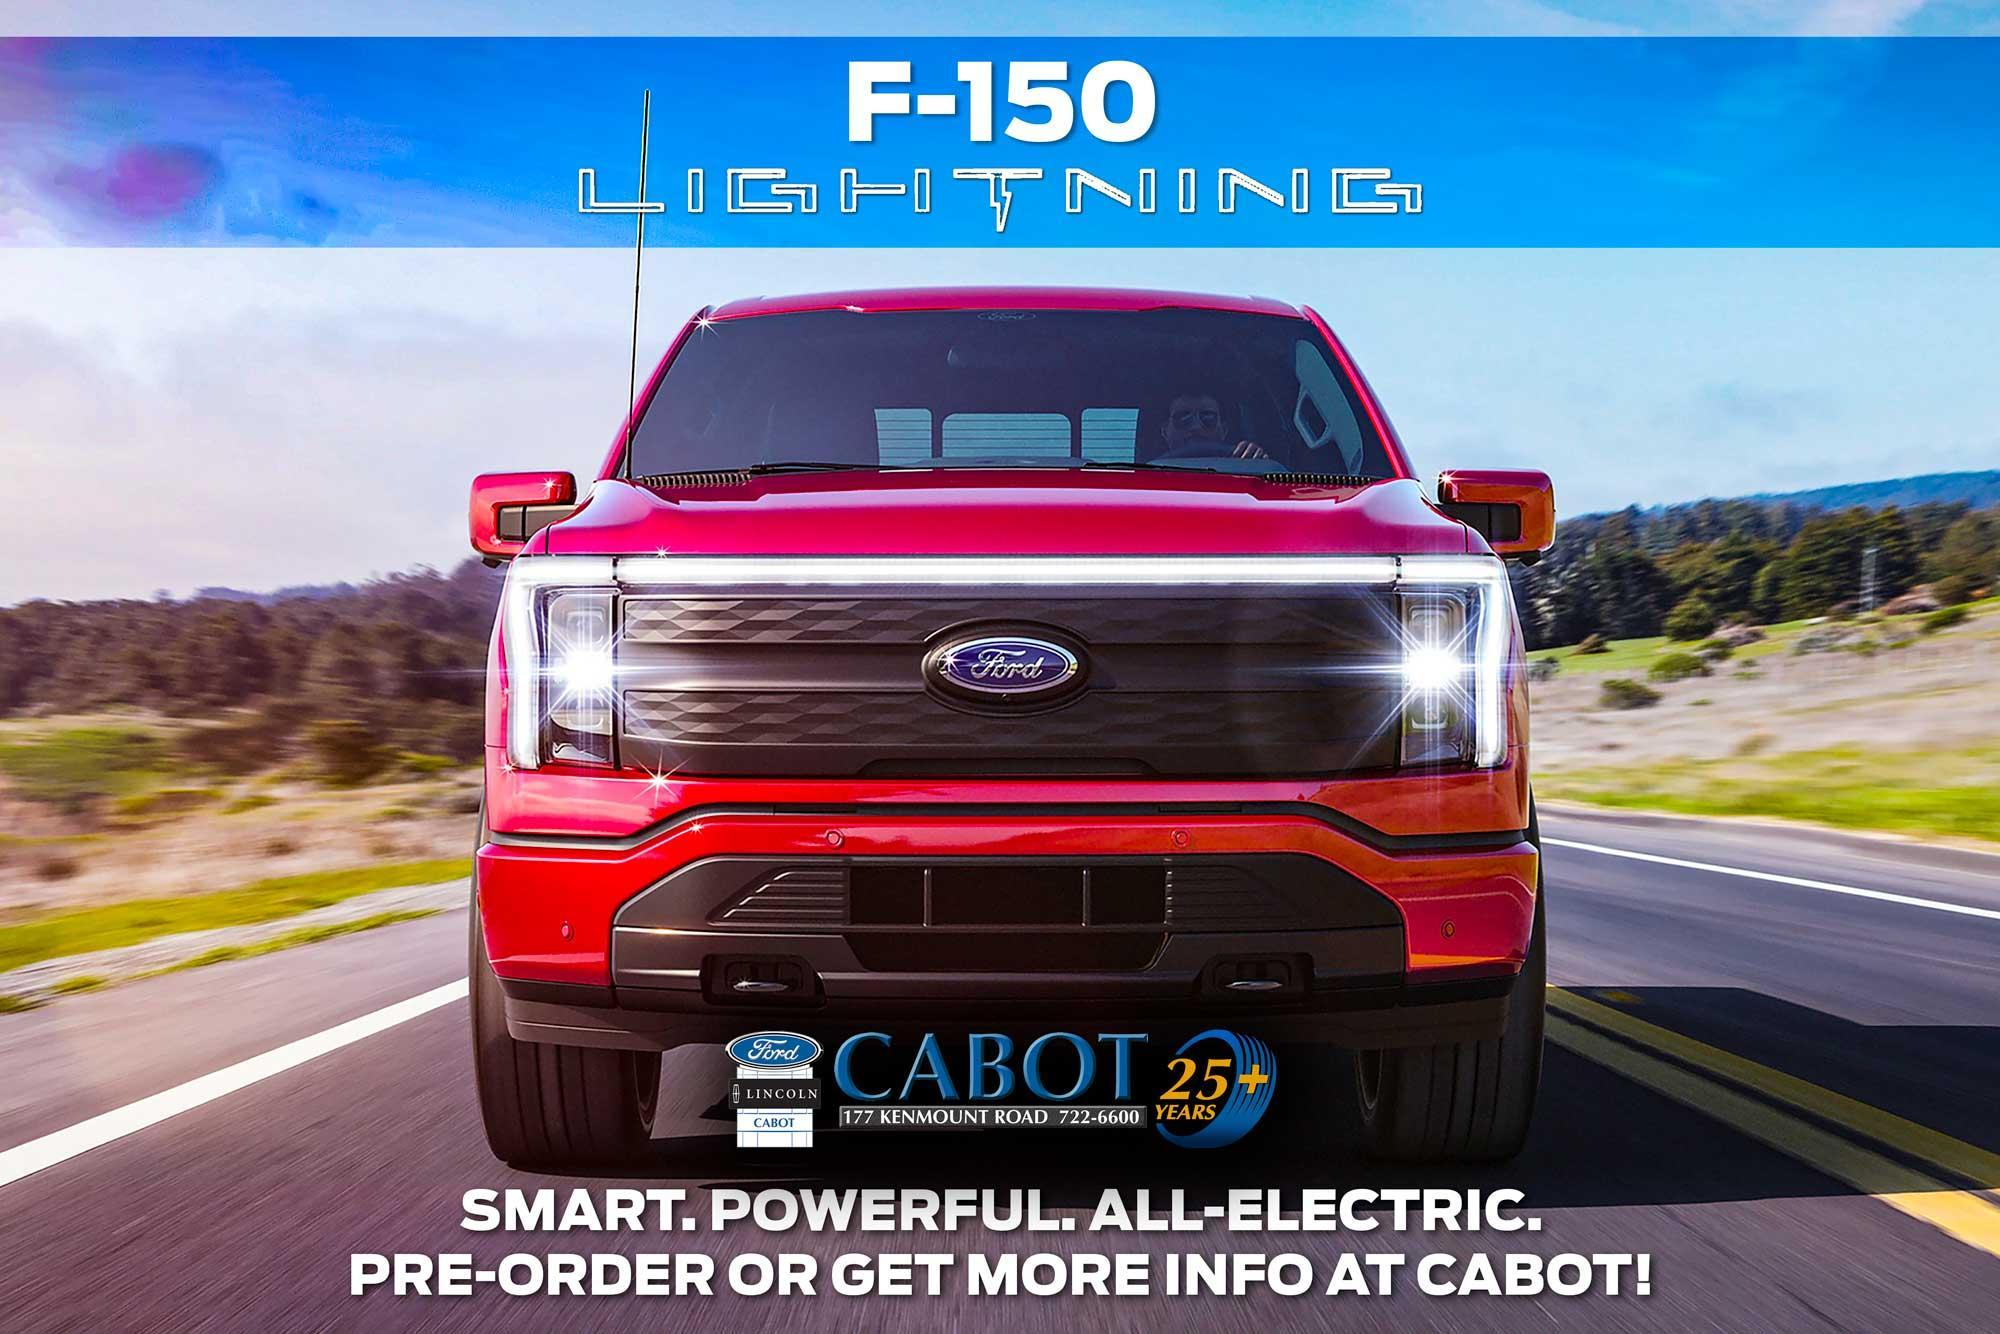 The smart and powerful 2022 Ford Lightning all-electric truck offers all the benefits of going electric. Preorder now or get details at Cabot!